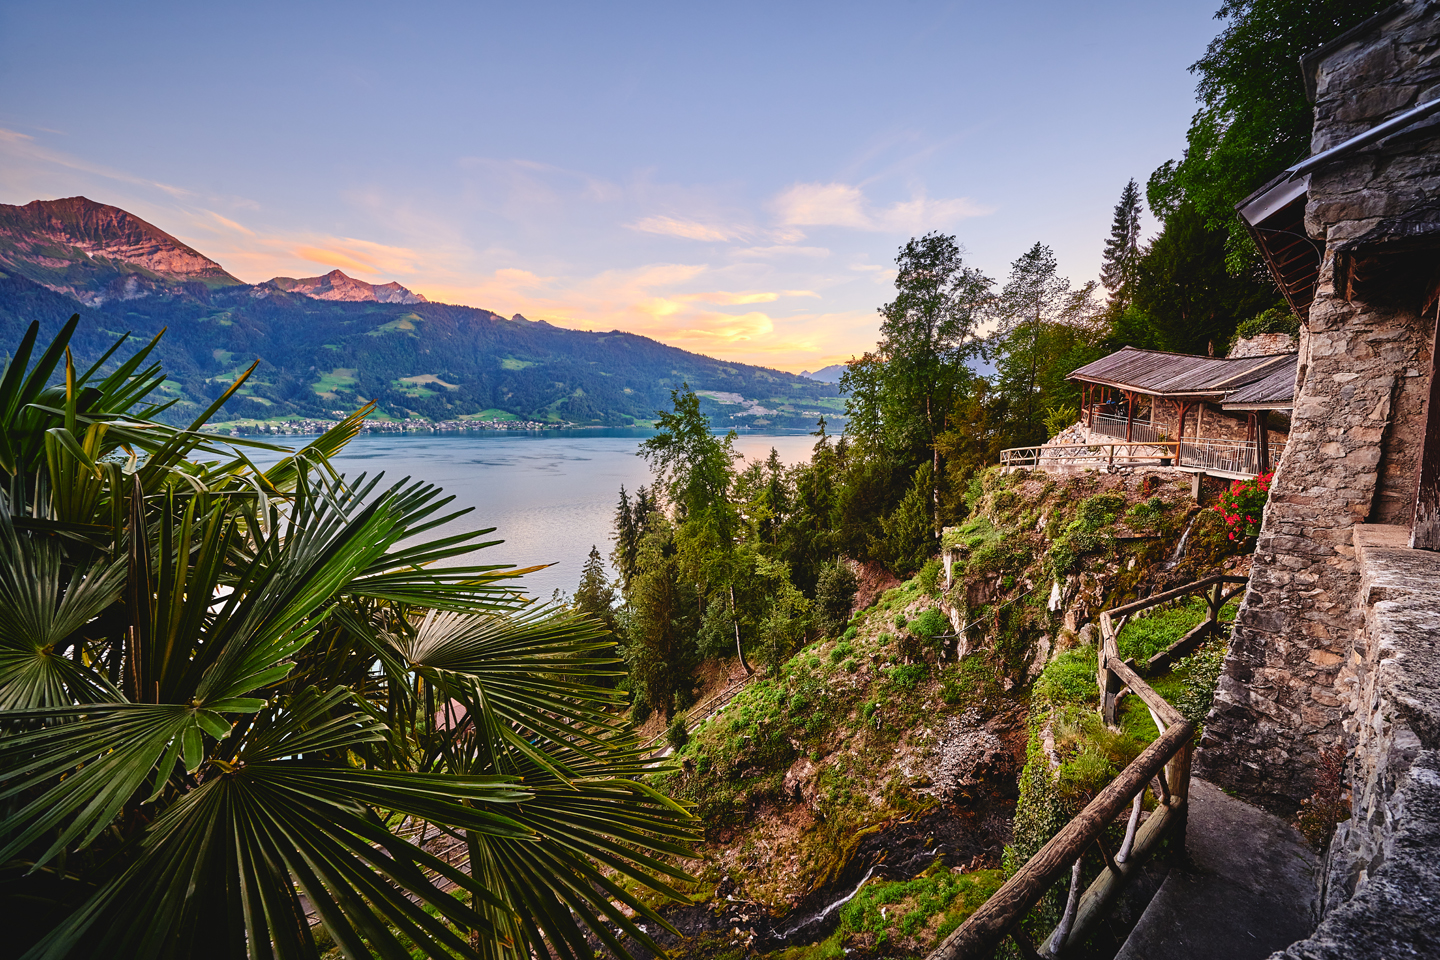 The view from the entrance of the Beatus caves on Lake Thun